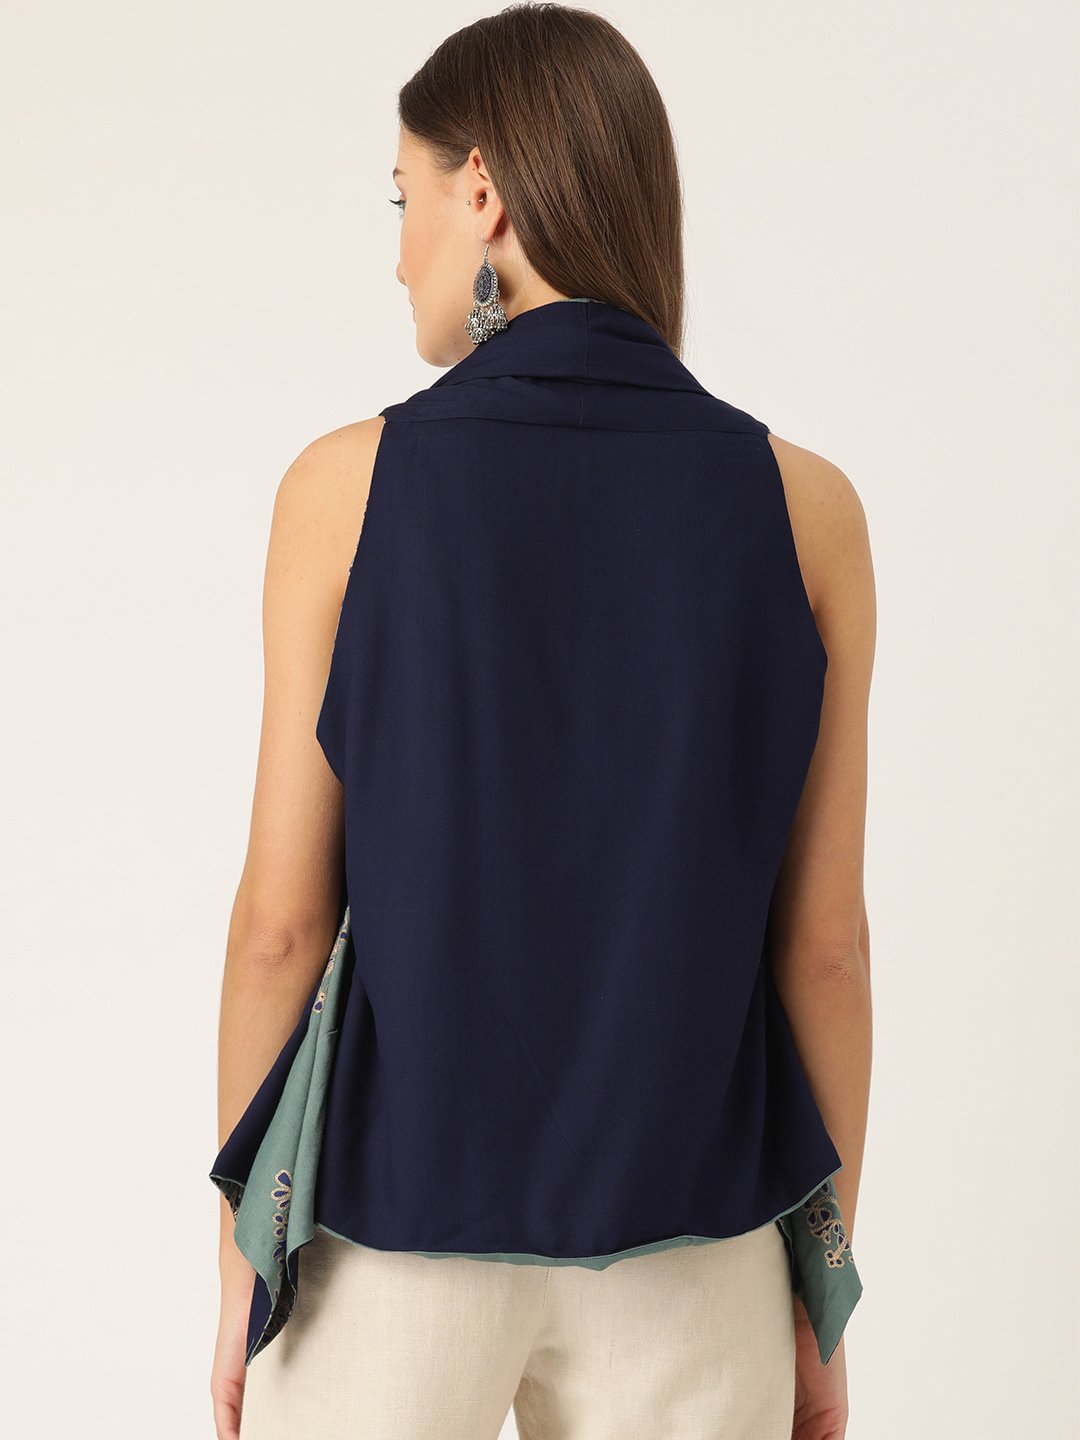 Reversible Shrug In Green And Navy Blue